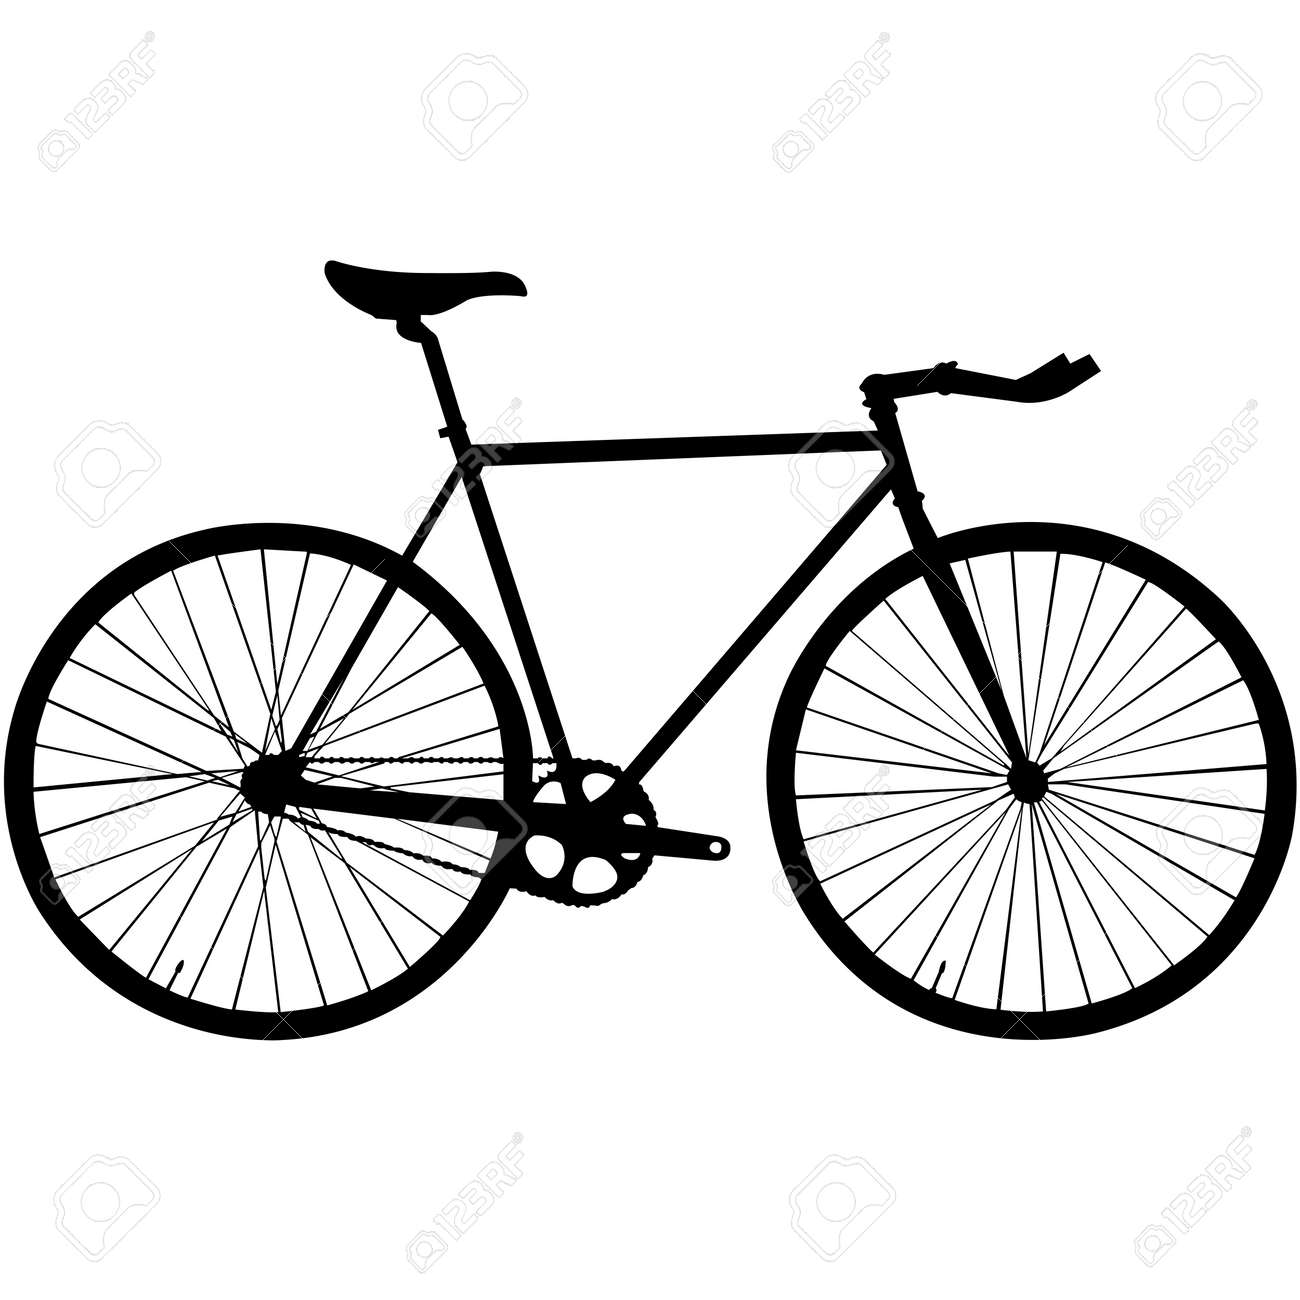 Bicycle Silhouette Vector - 158078603